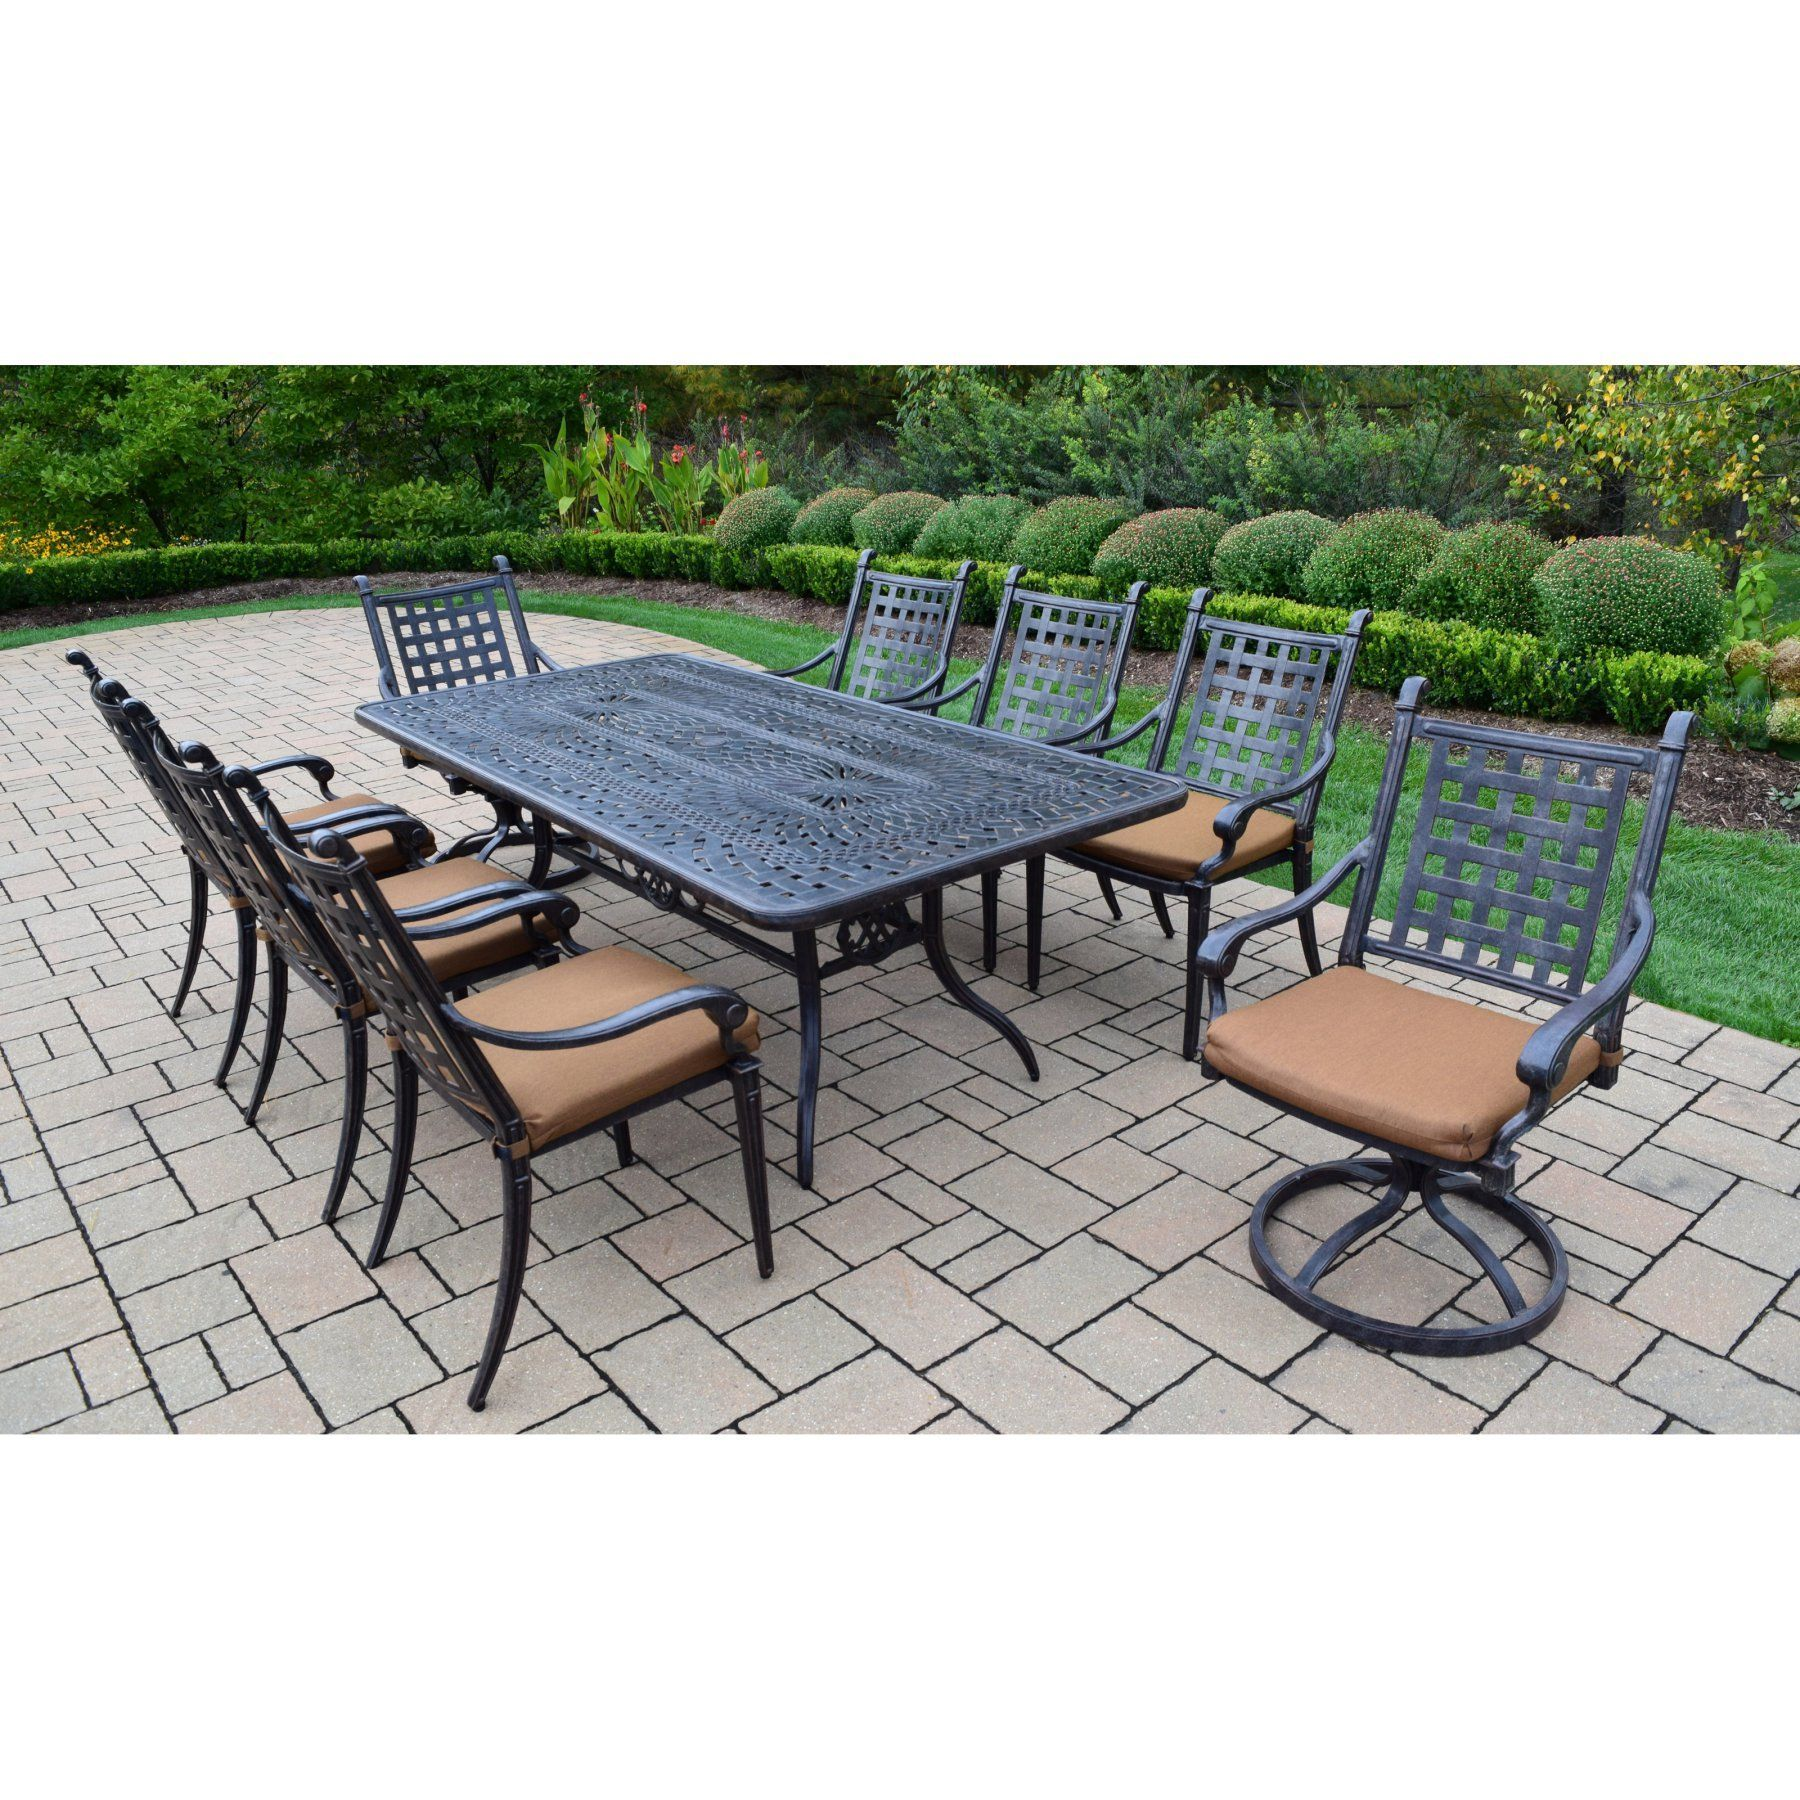 Outdoor Oakland Living Belmont 9 Piece Patio Dining Set With